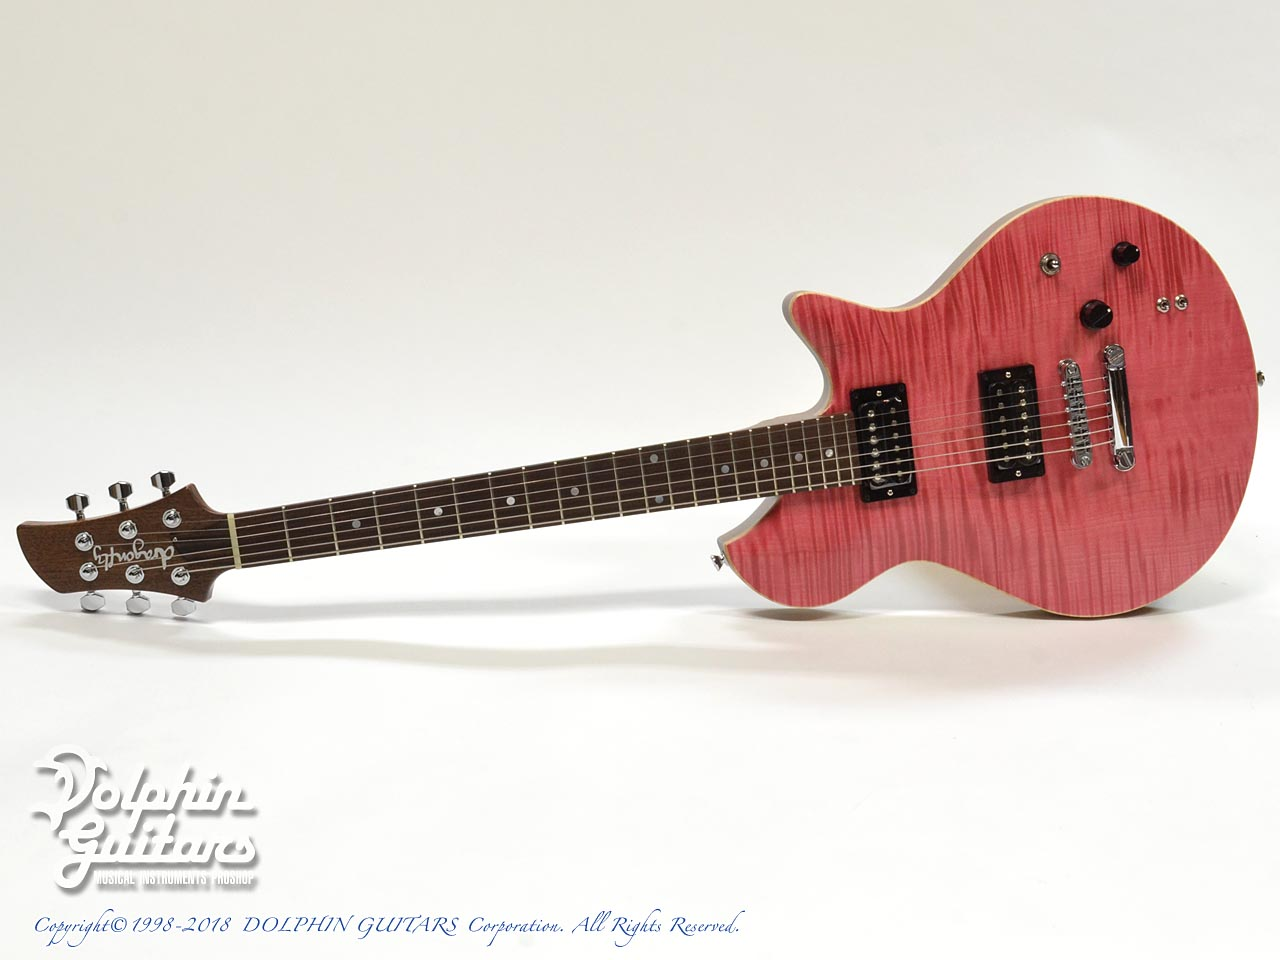 dragonfly: Maroon LH 648 (Transparent Pink) (0)